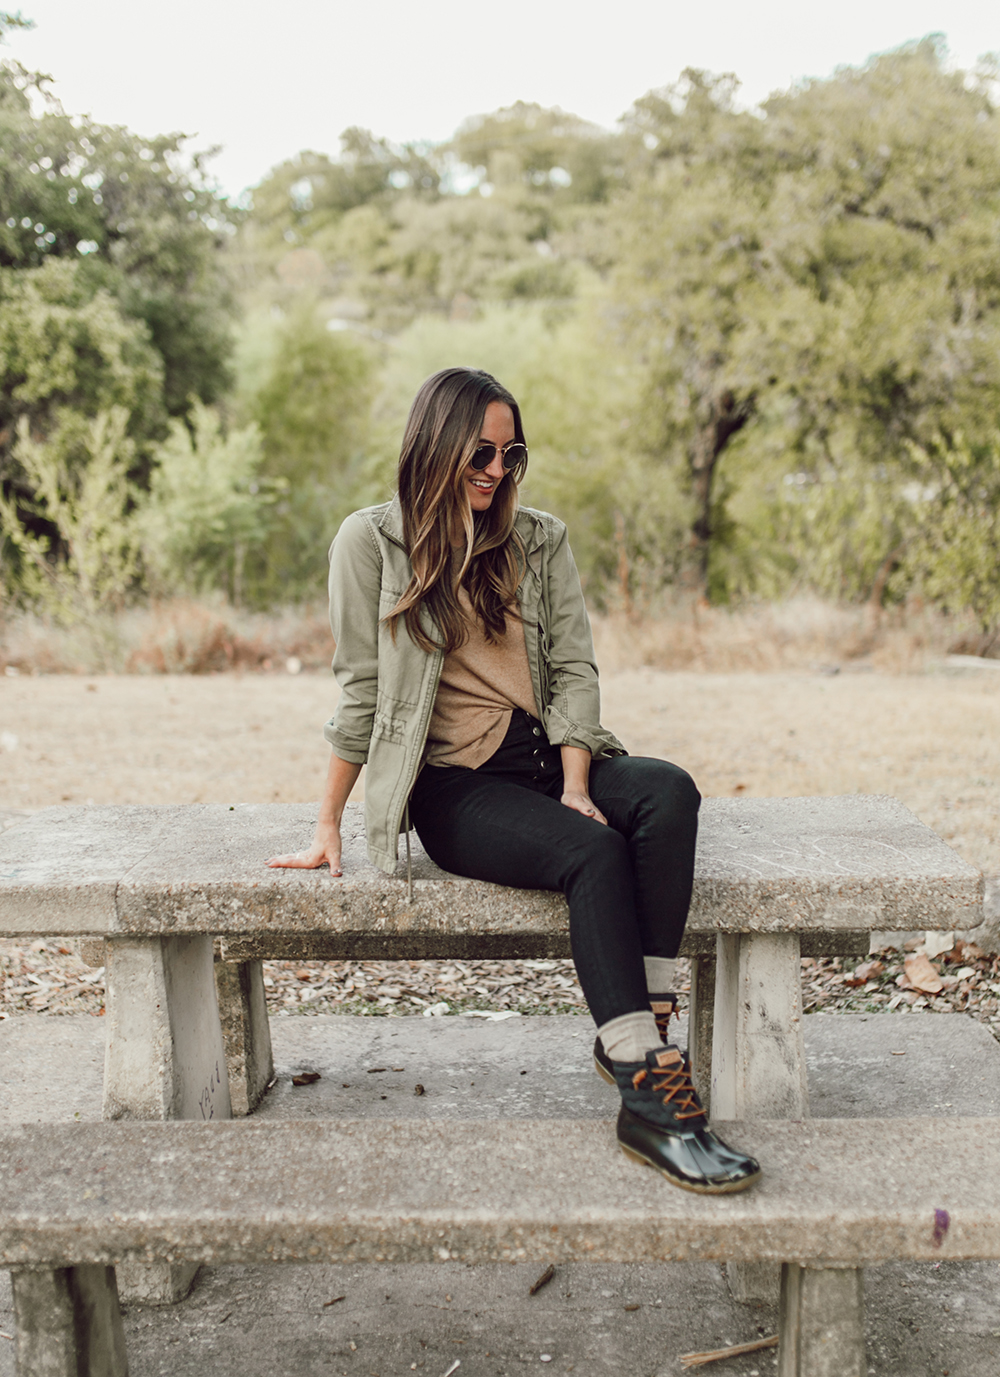 livvyland-blog-olivia-watson-austin-texas-lifestyle-fashion-blogger-sperry-saltwater-duck-boots-outfit-idea-fall-style-11